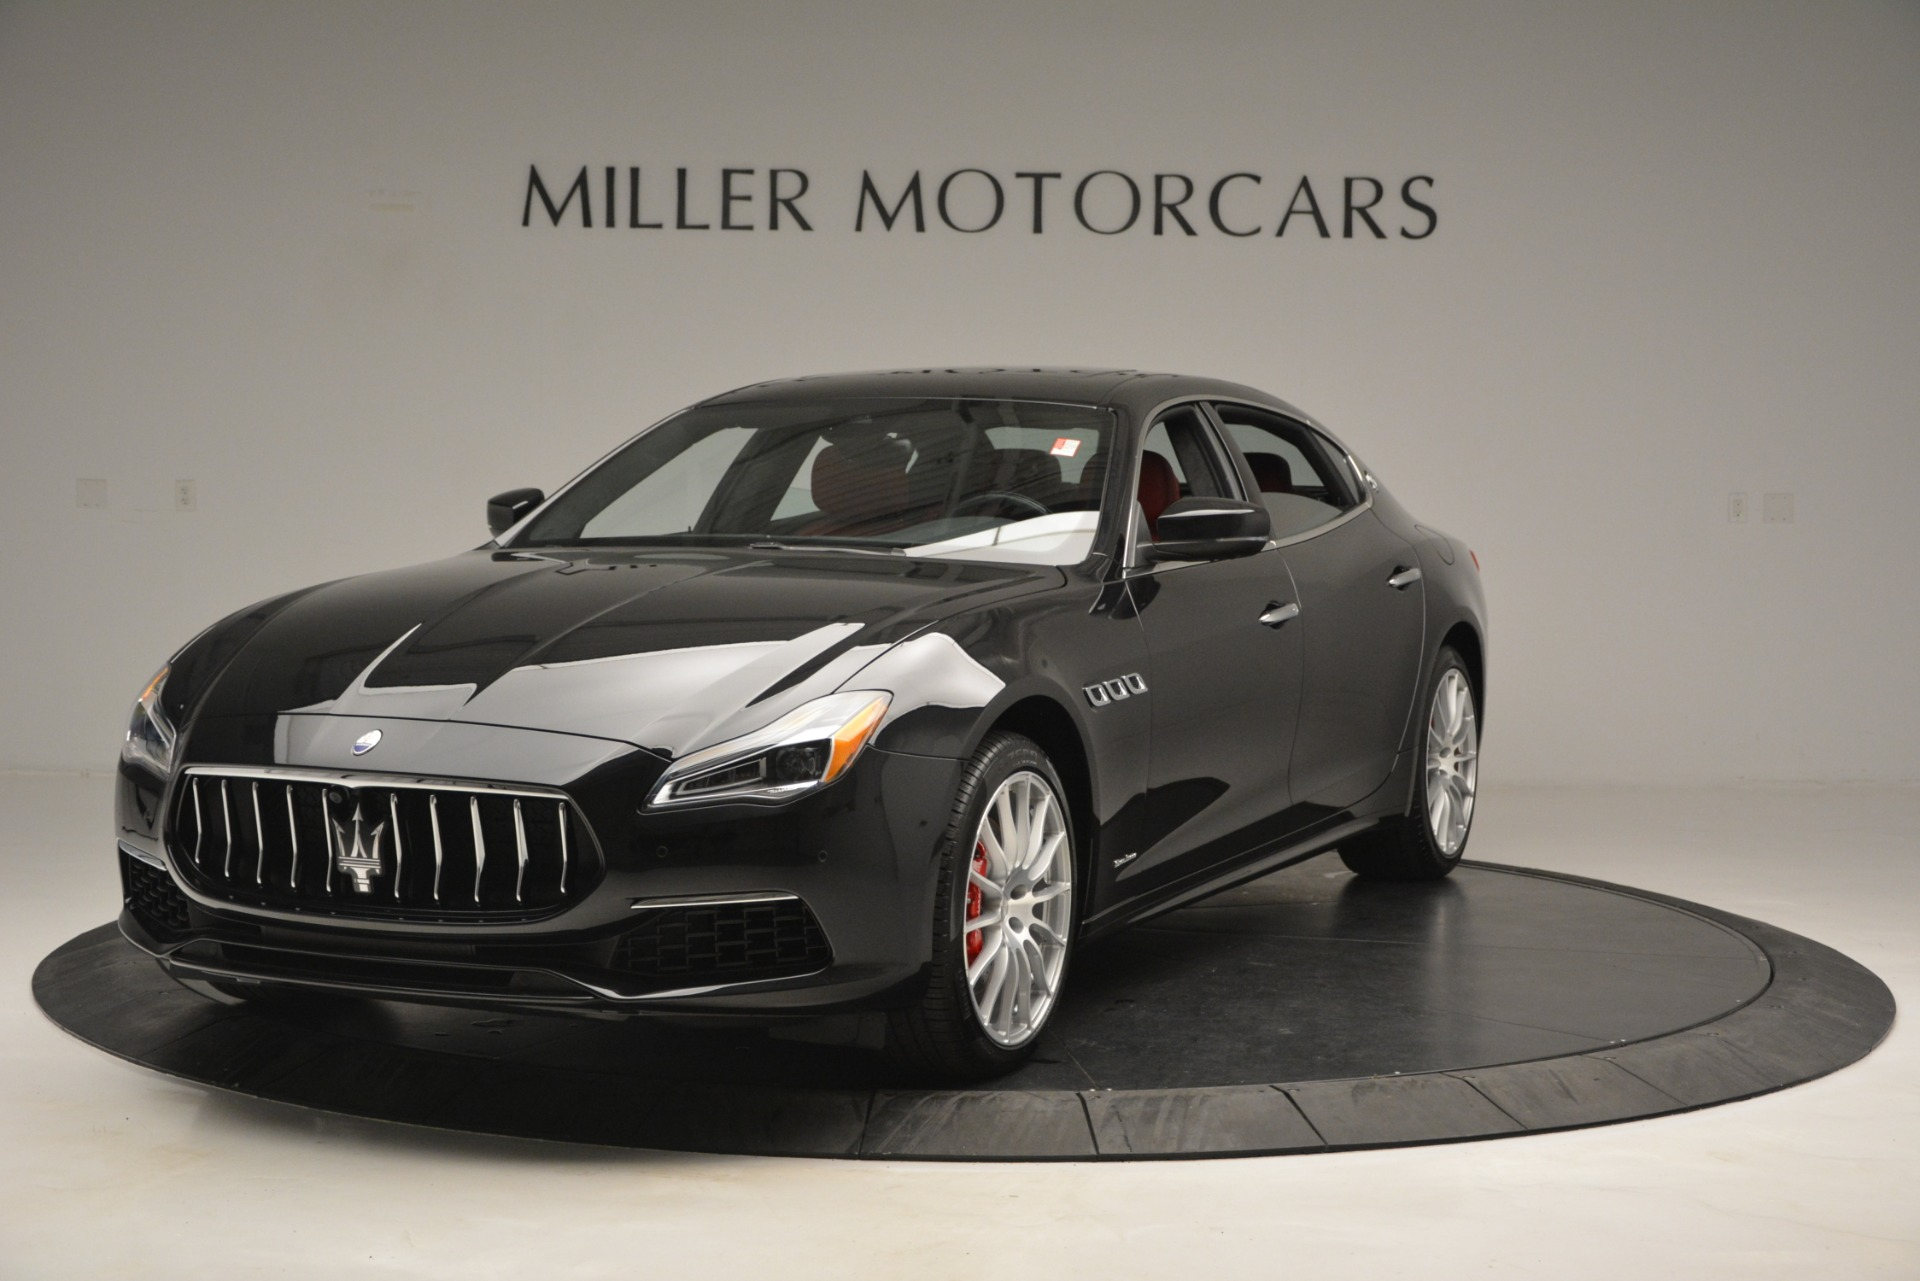 New 2019 Maserati Quattroporte S Q4 GranLusso For Sale In Greenwich, CT. Alfa Romeo of Greenwich, W629 2718_main